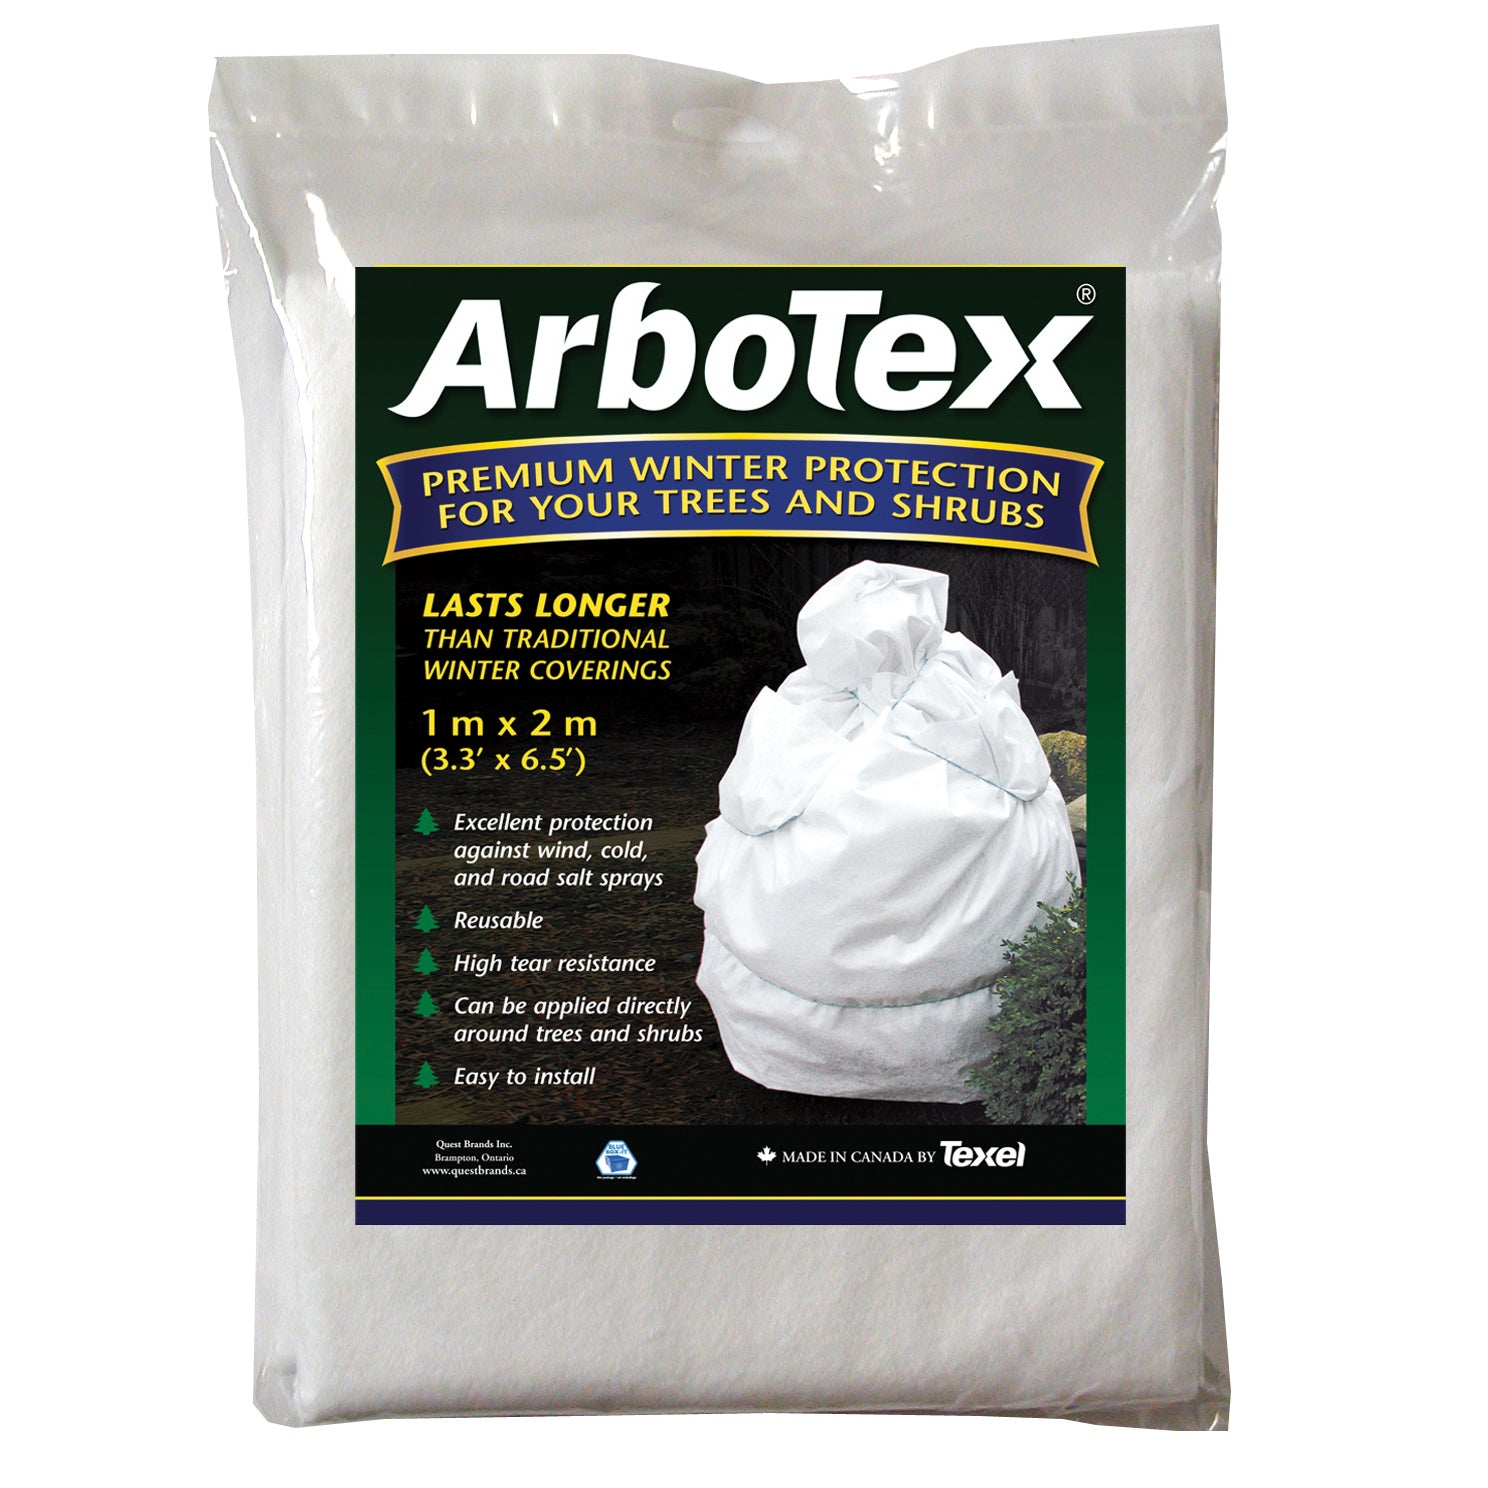 Arbotex - Tree and Shrub cover 1m x 2m